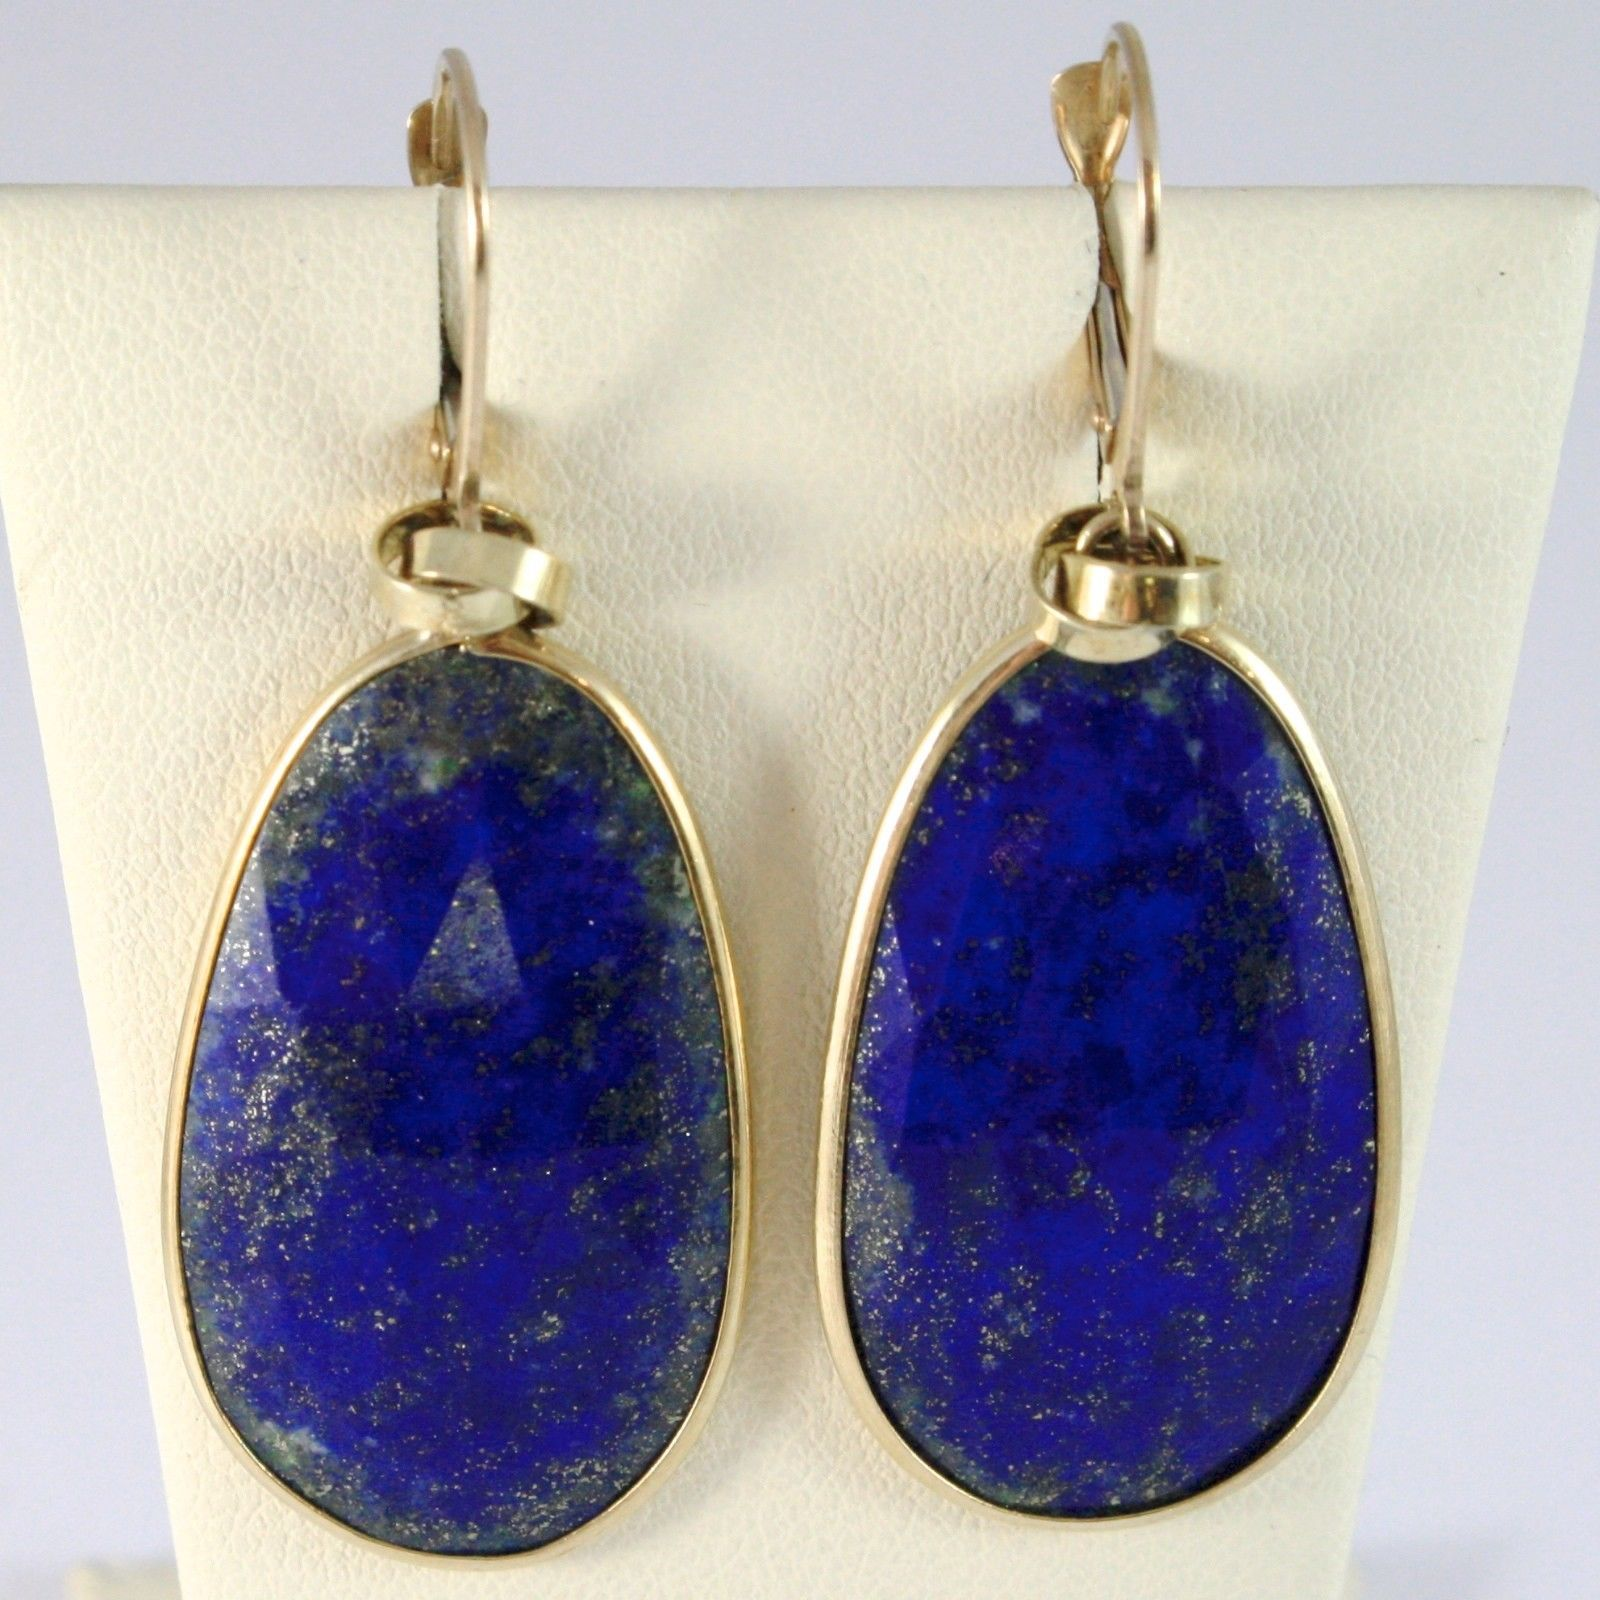 YELLOW GOLD EARRINGS 375 9K HANGING WITH LAPIS LAZULI BLUE DROP